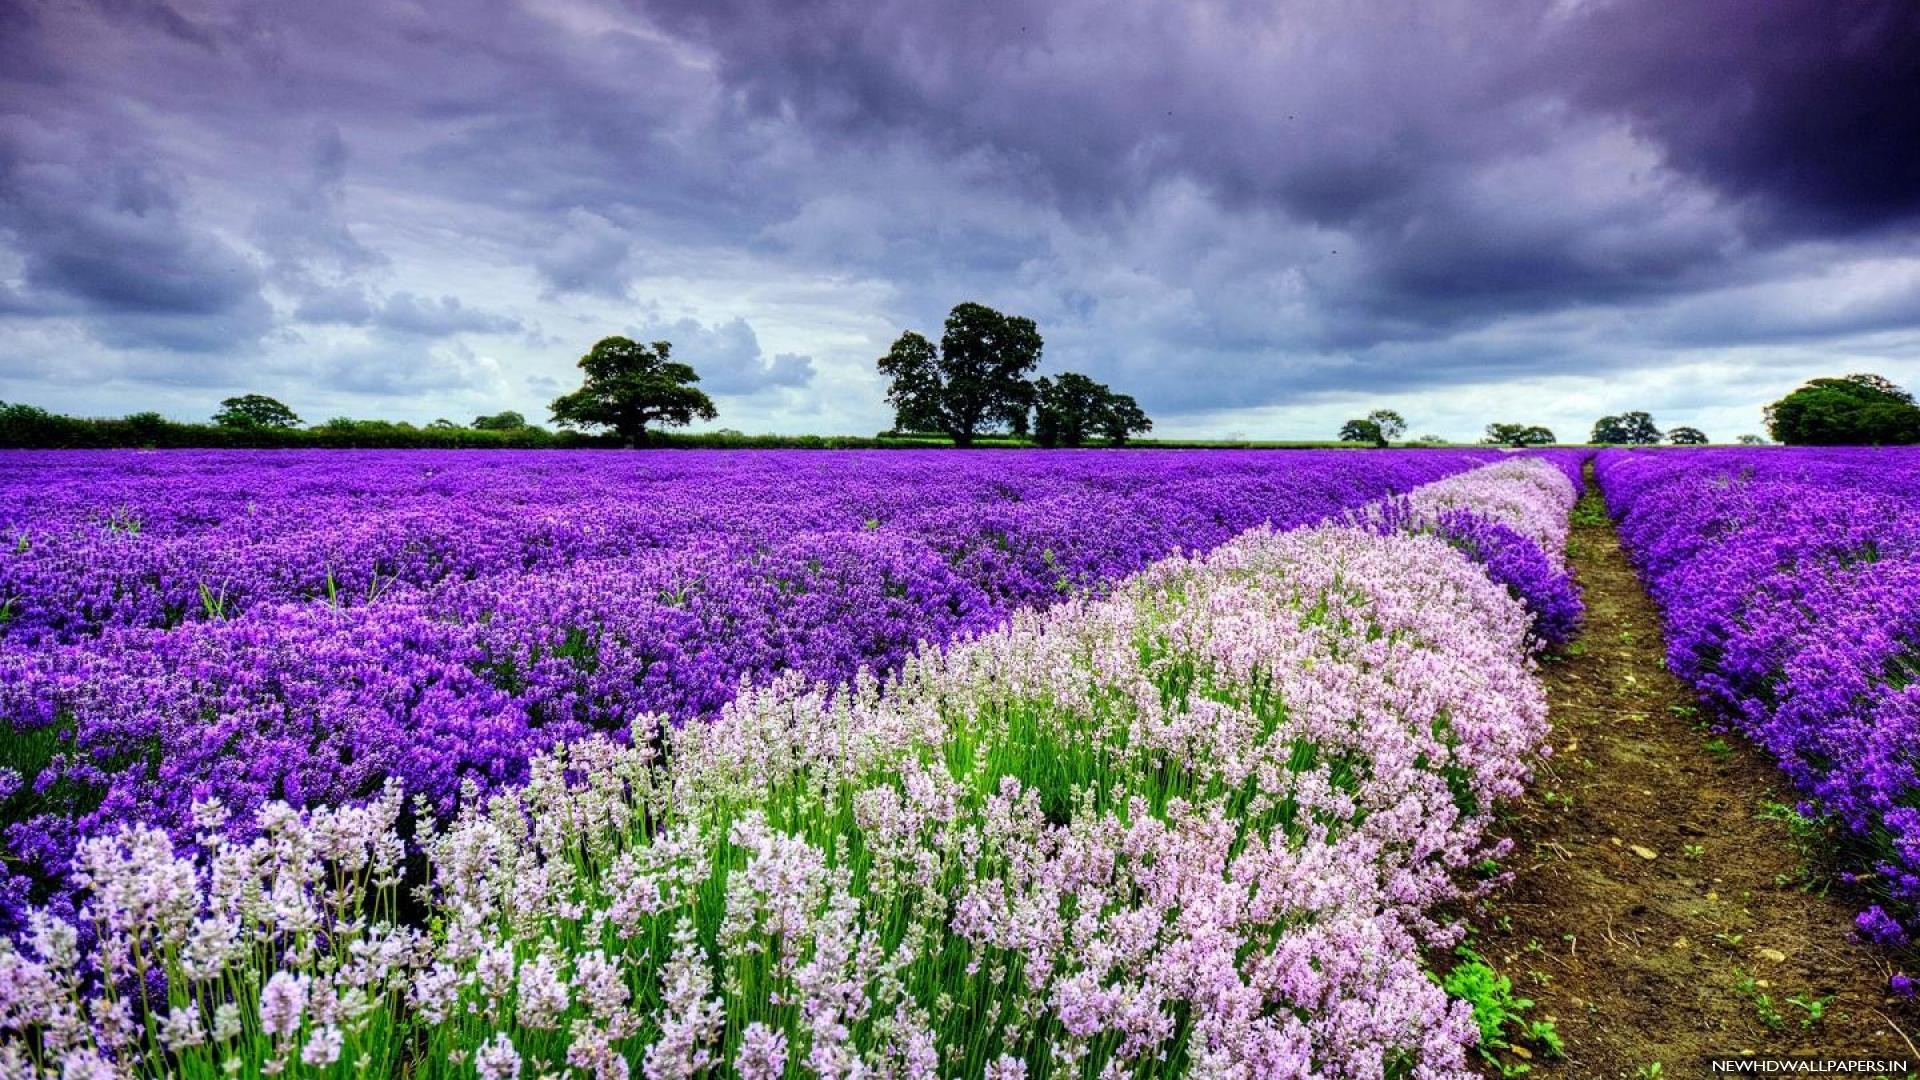 white-purple-flower-field-hd-wallpaper | wallpaper.wiki